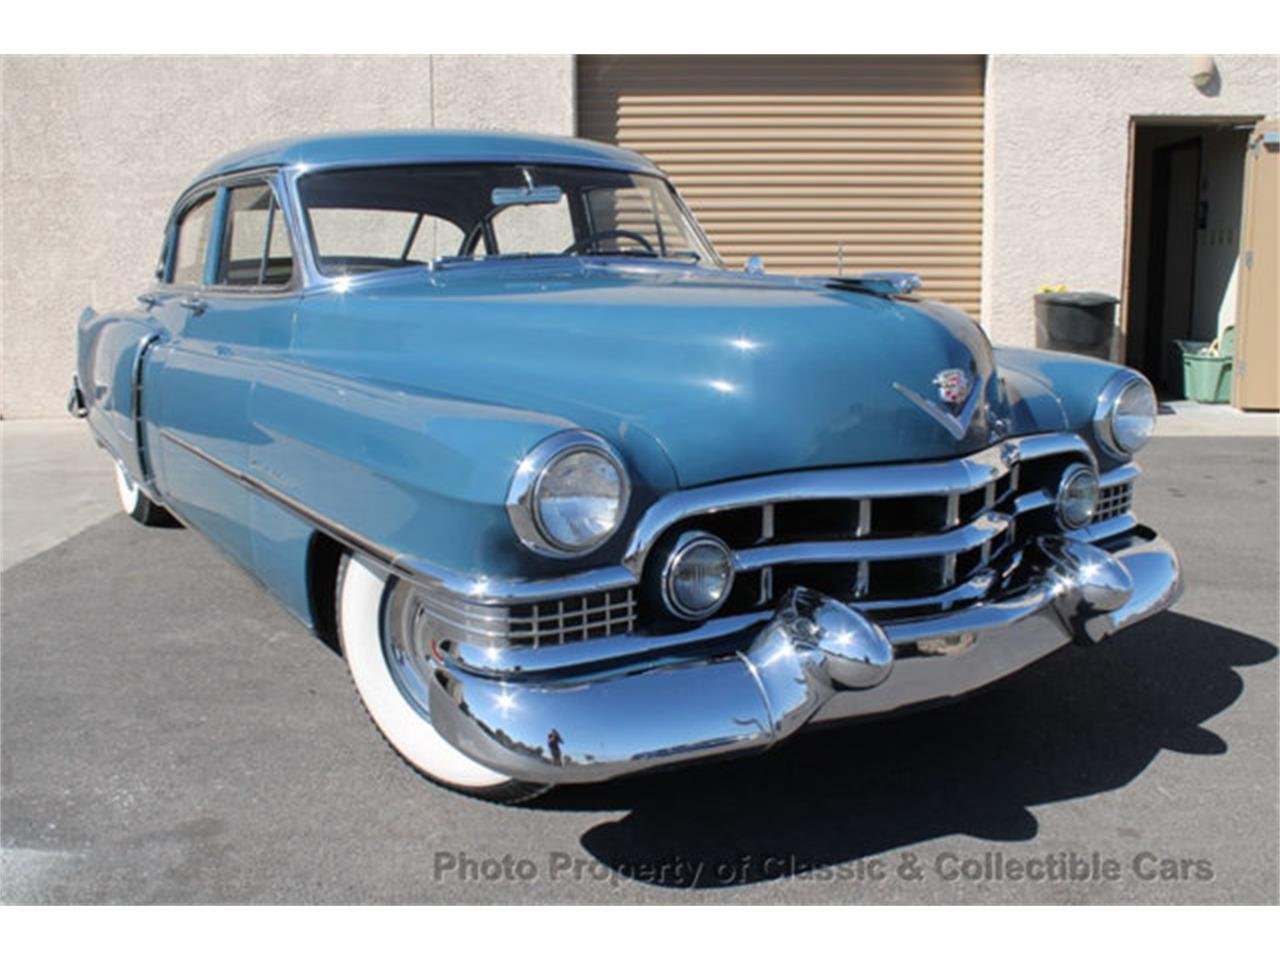 51 Cadillac Class Of By Smarques Redbubble 1951 Sedan Deville Fleetwood For Sale Classiccars Com Cc 1148002